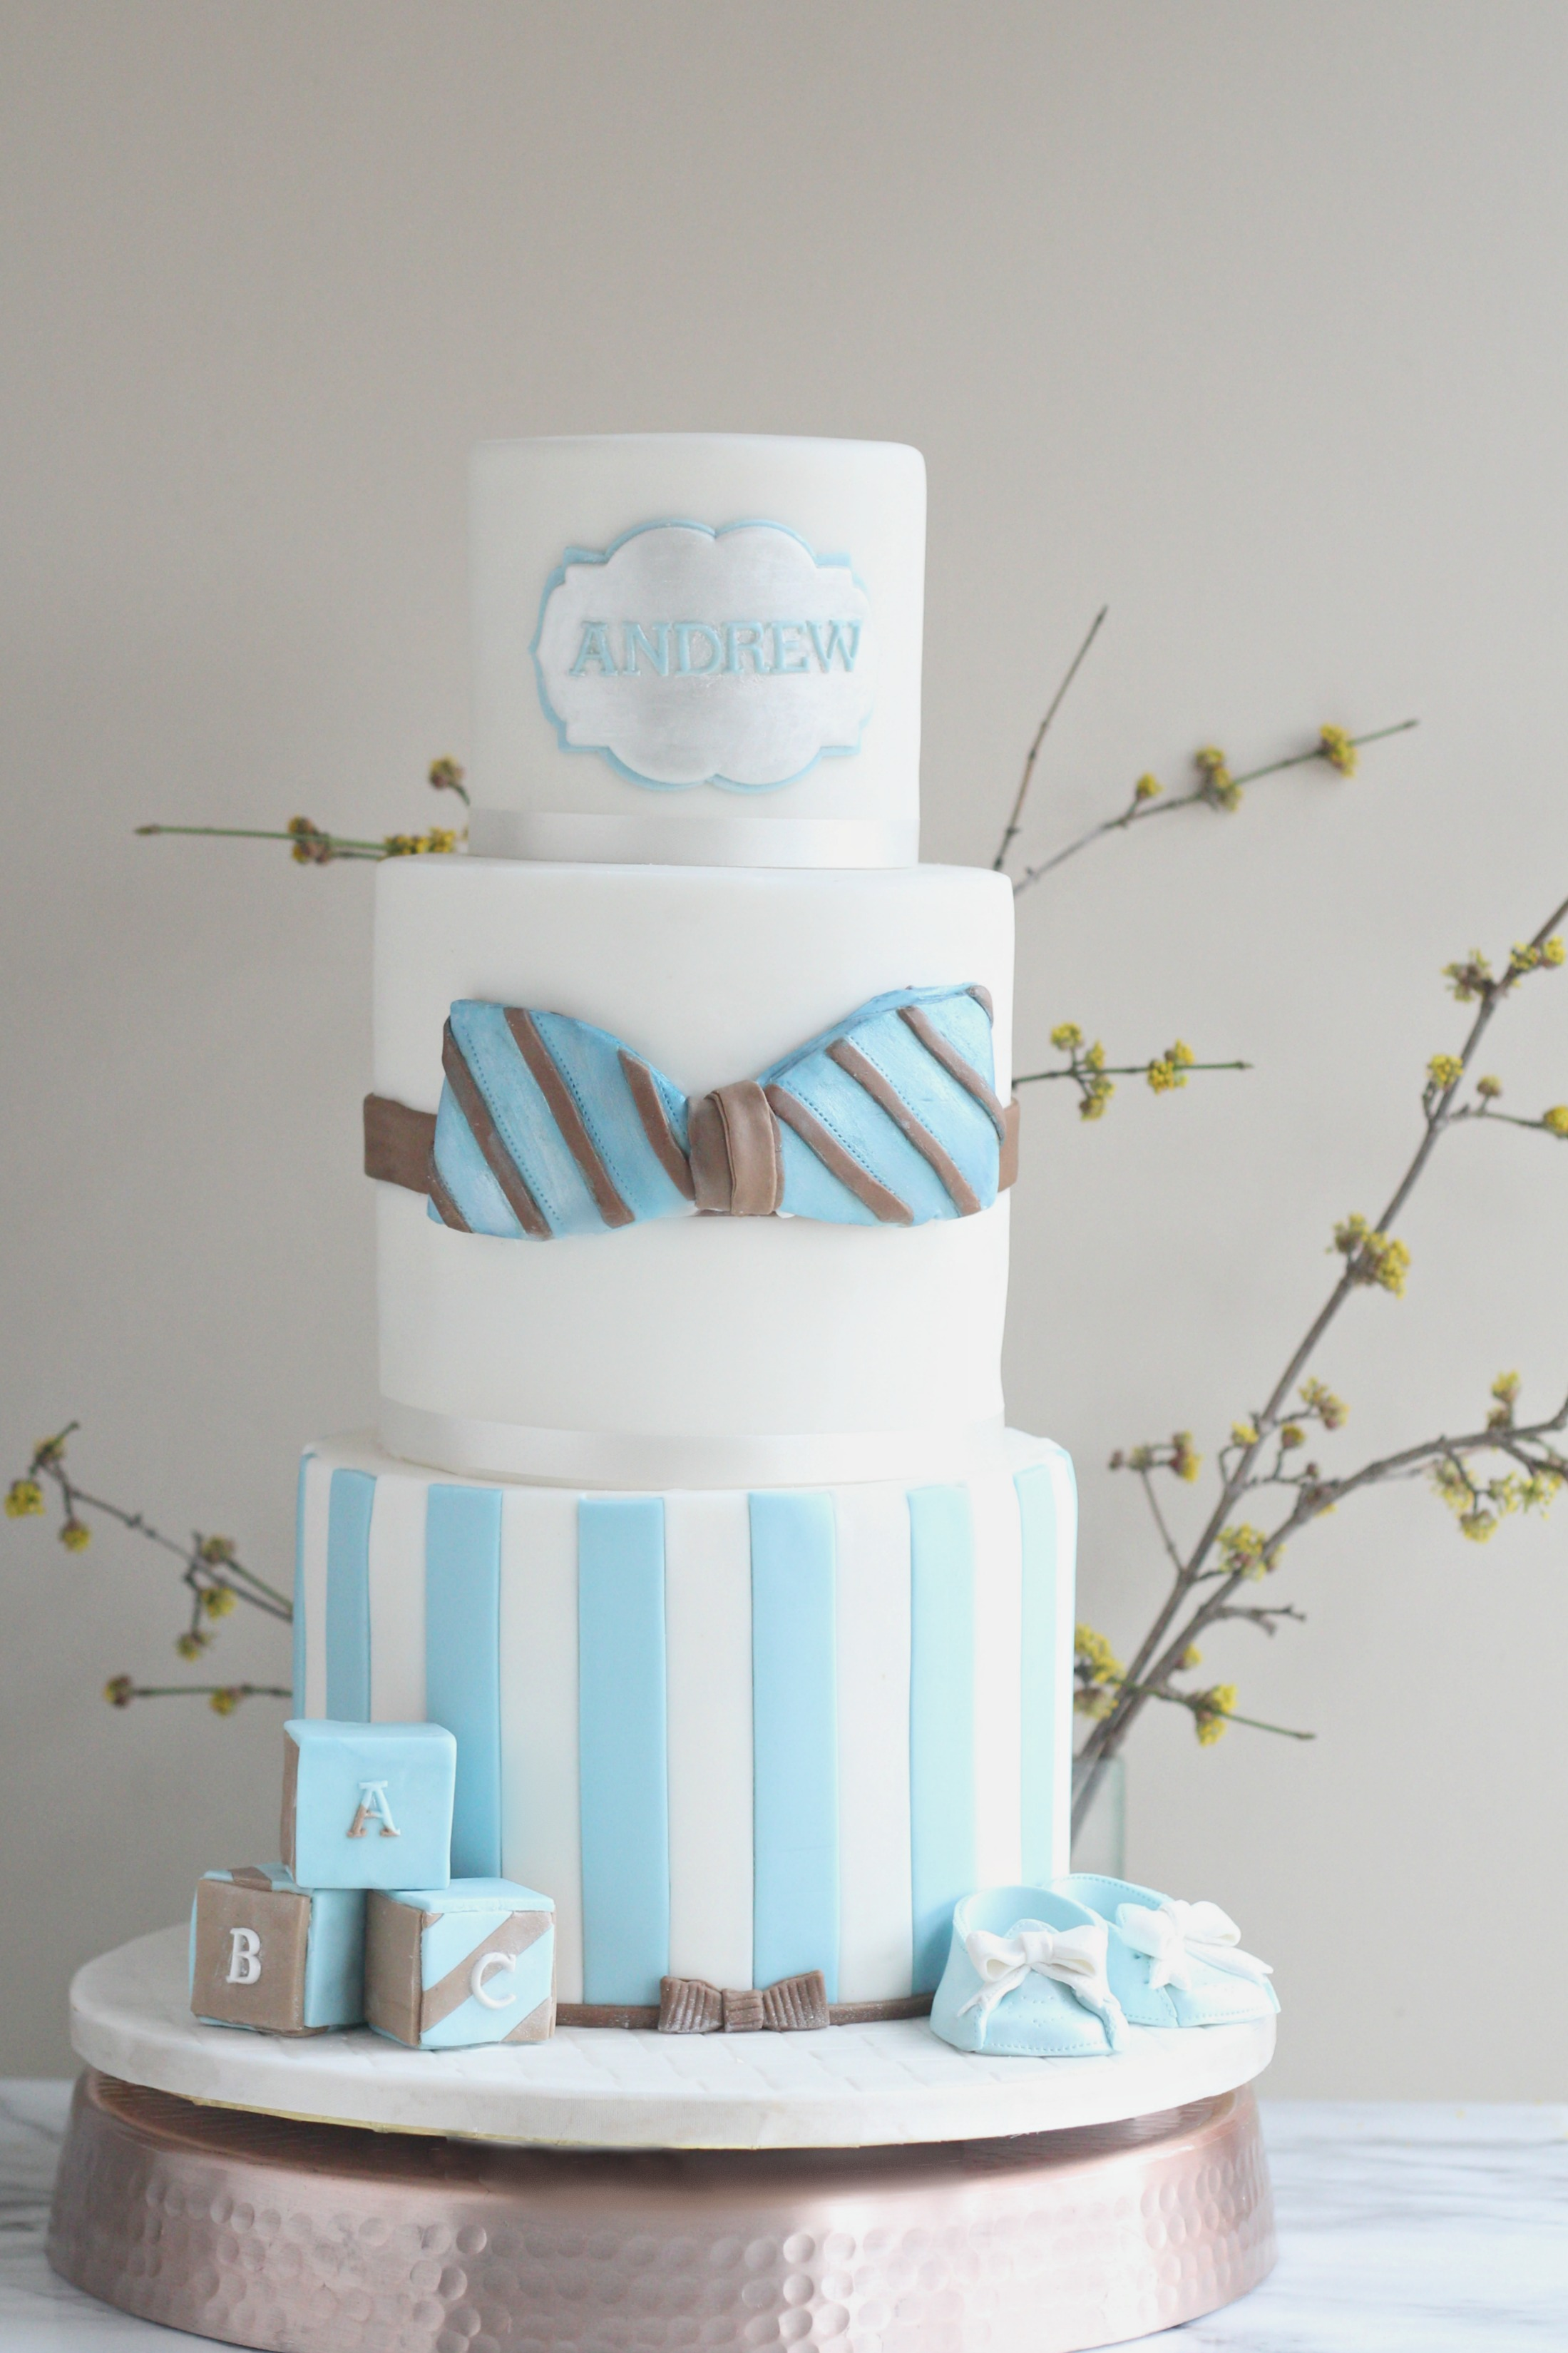 Andrew baptism cake bow tie blue and brown booties blocks e